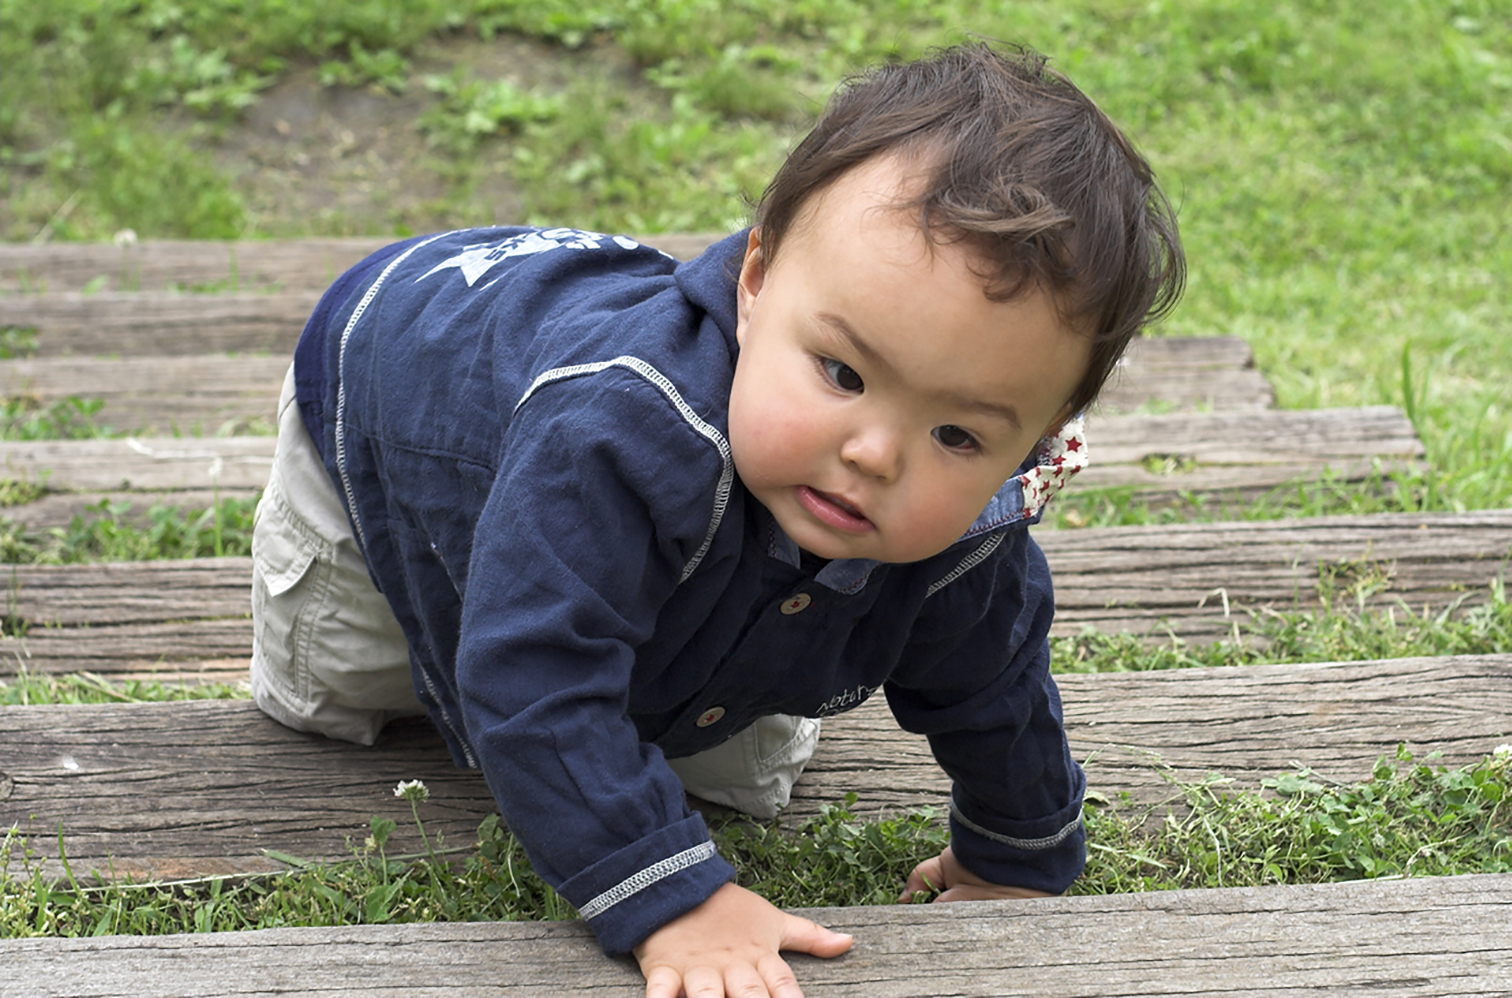 Asian toddler climbing up outdoor wooden stairs.